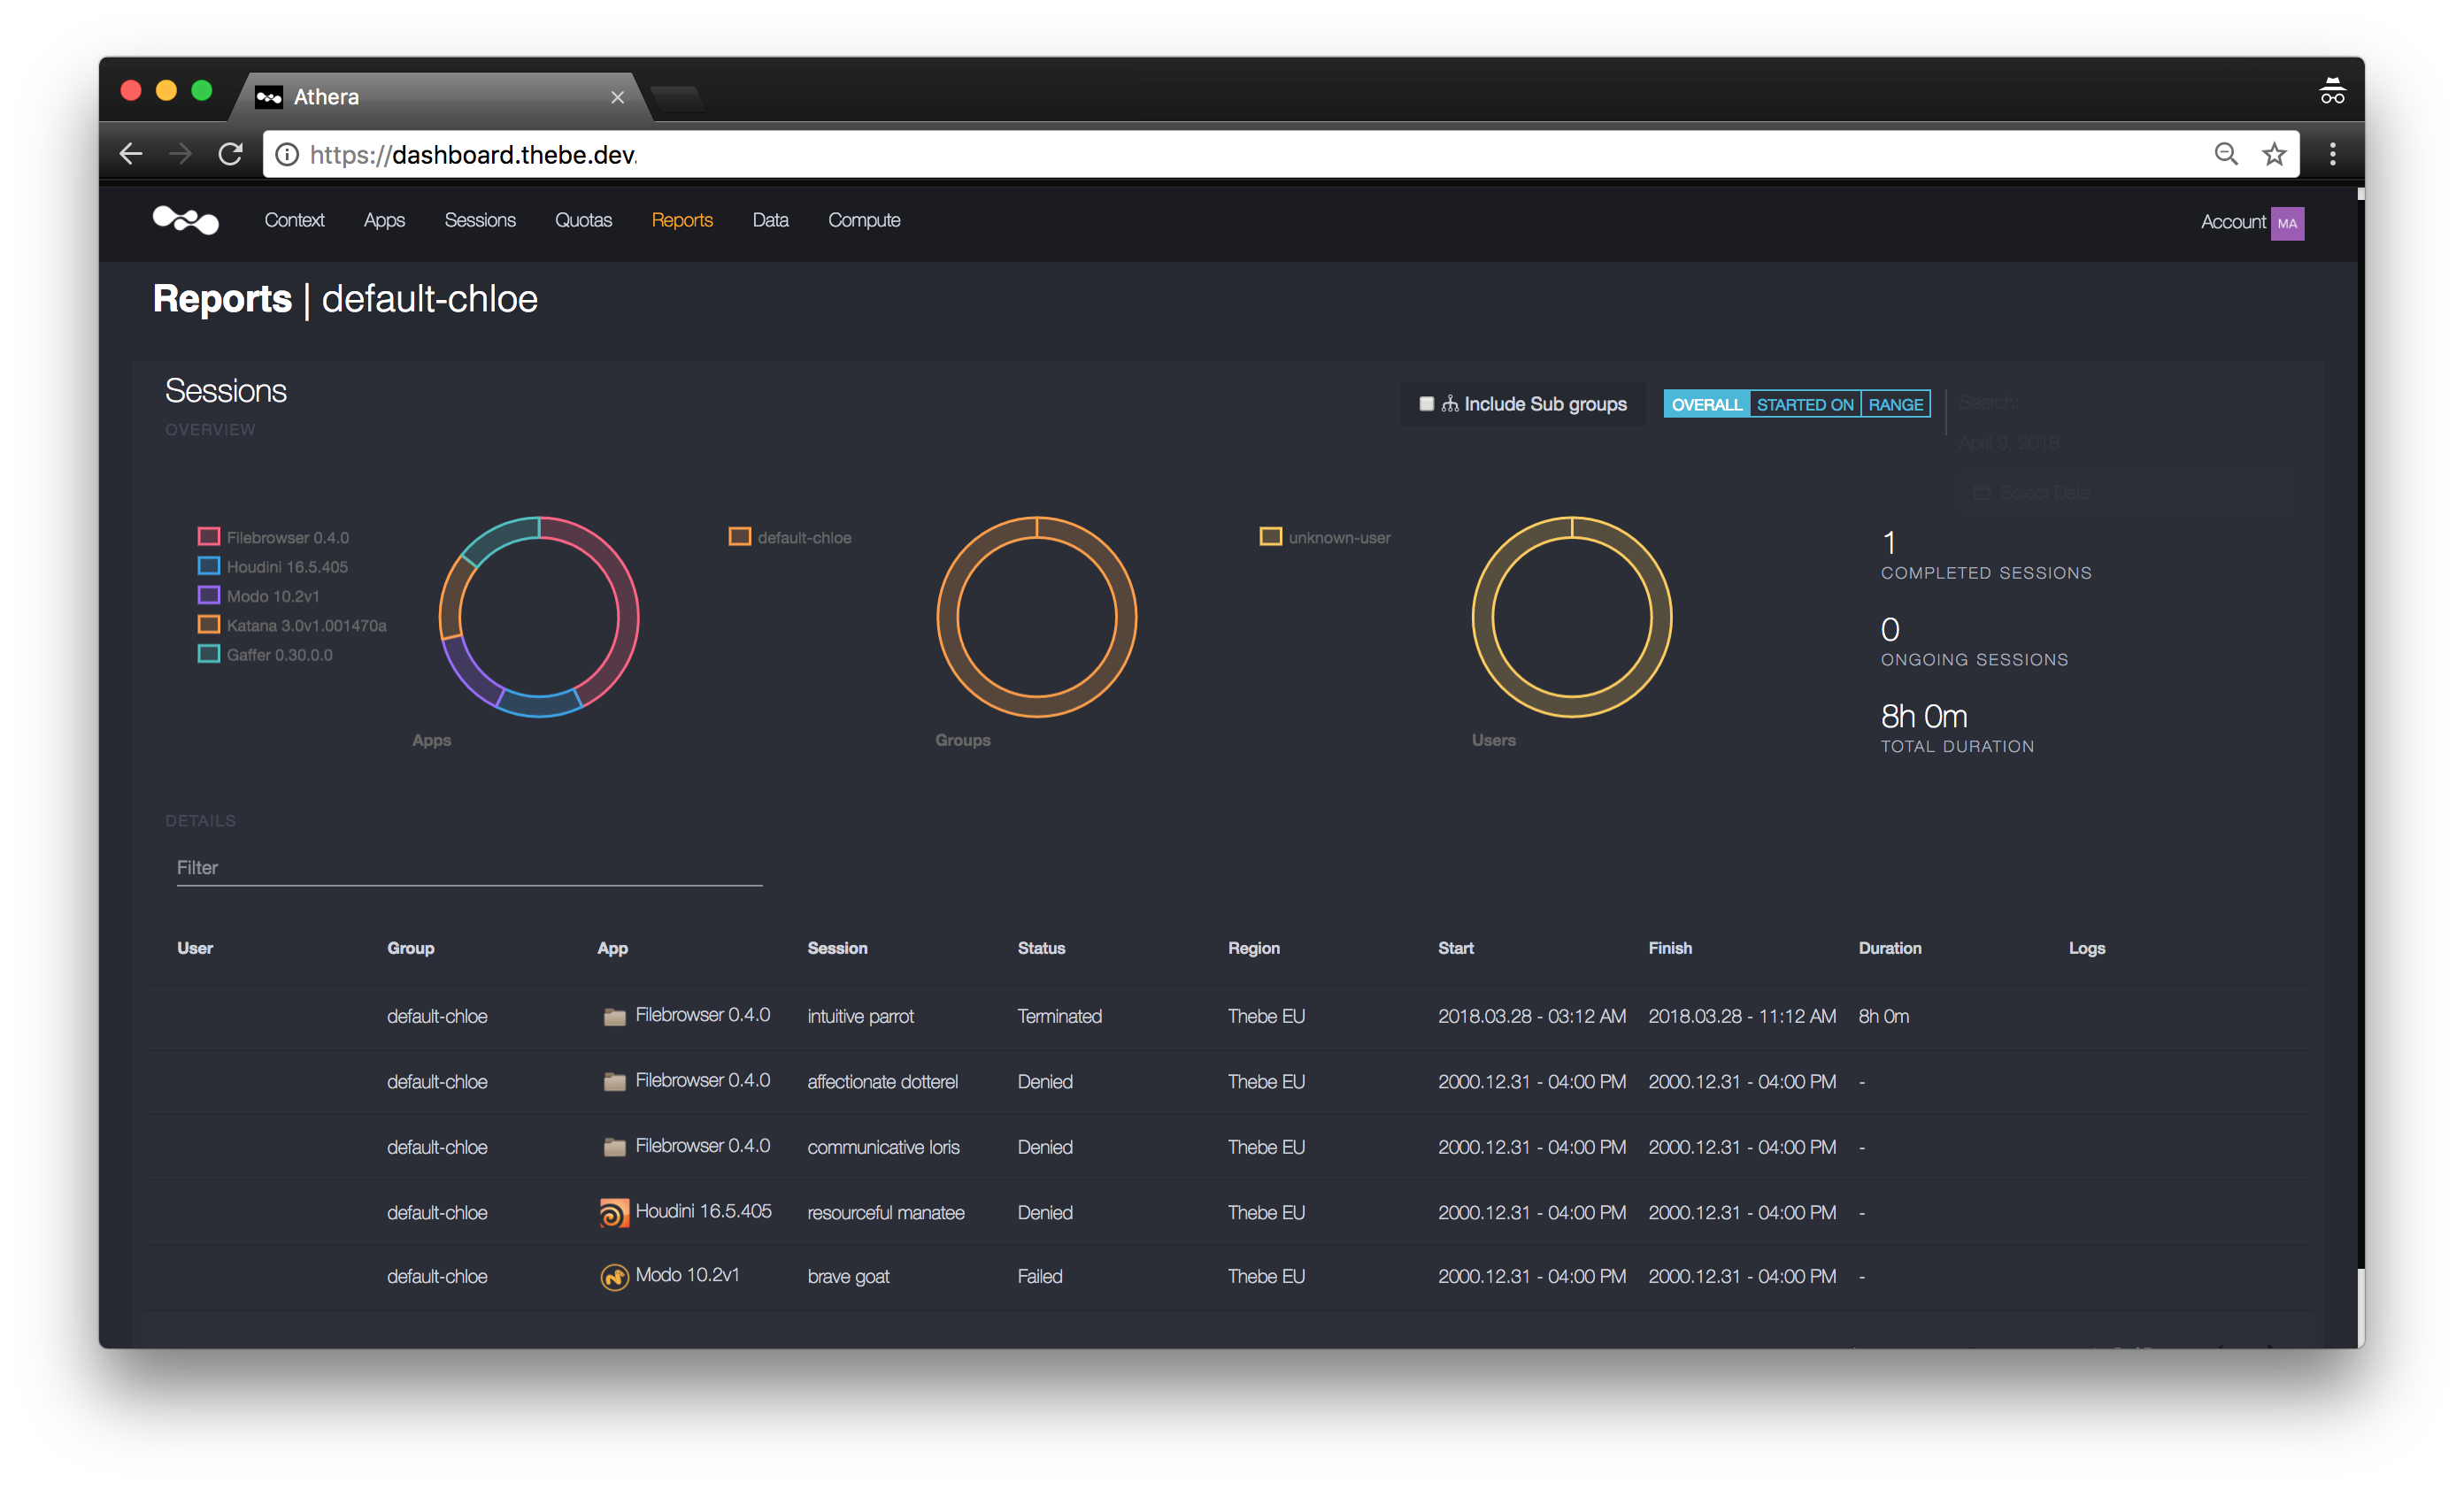 Athera dashboard with features